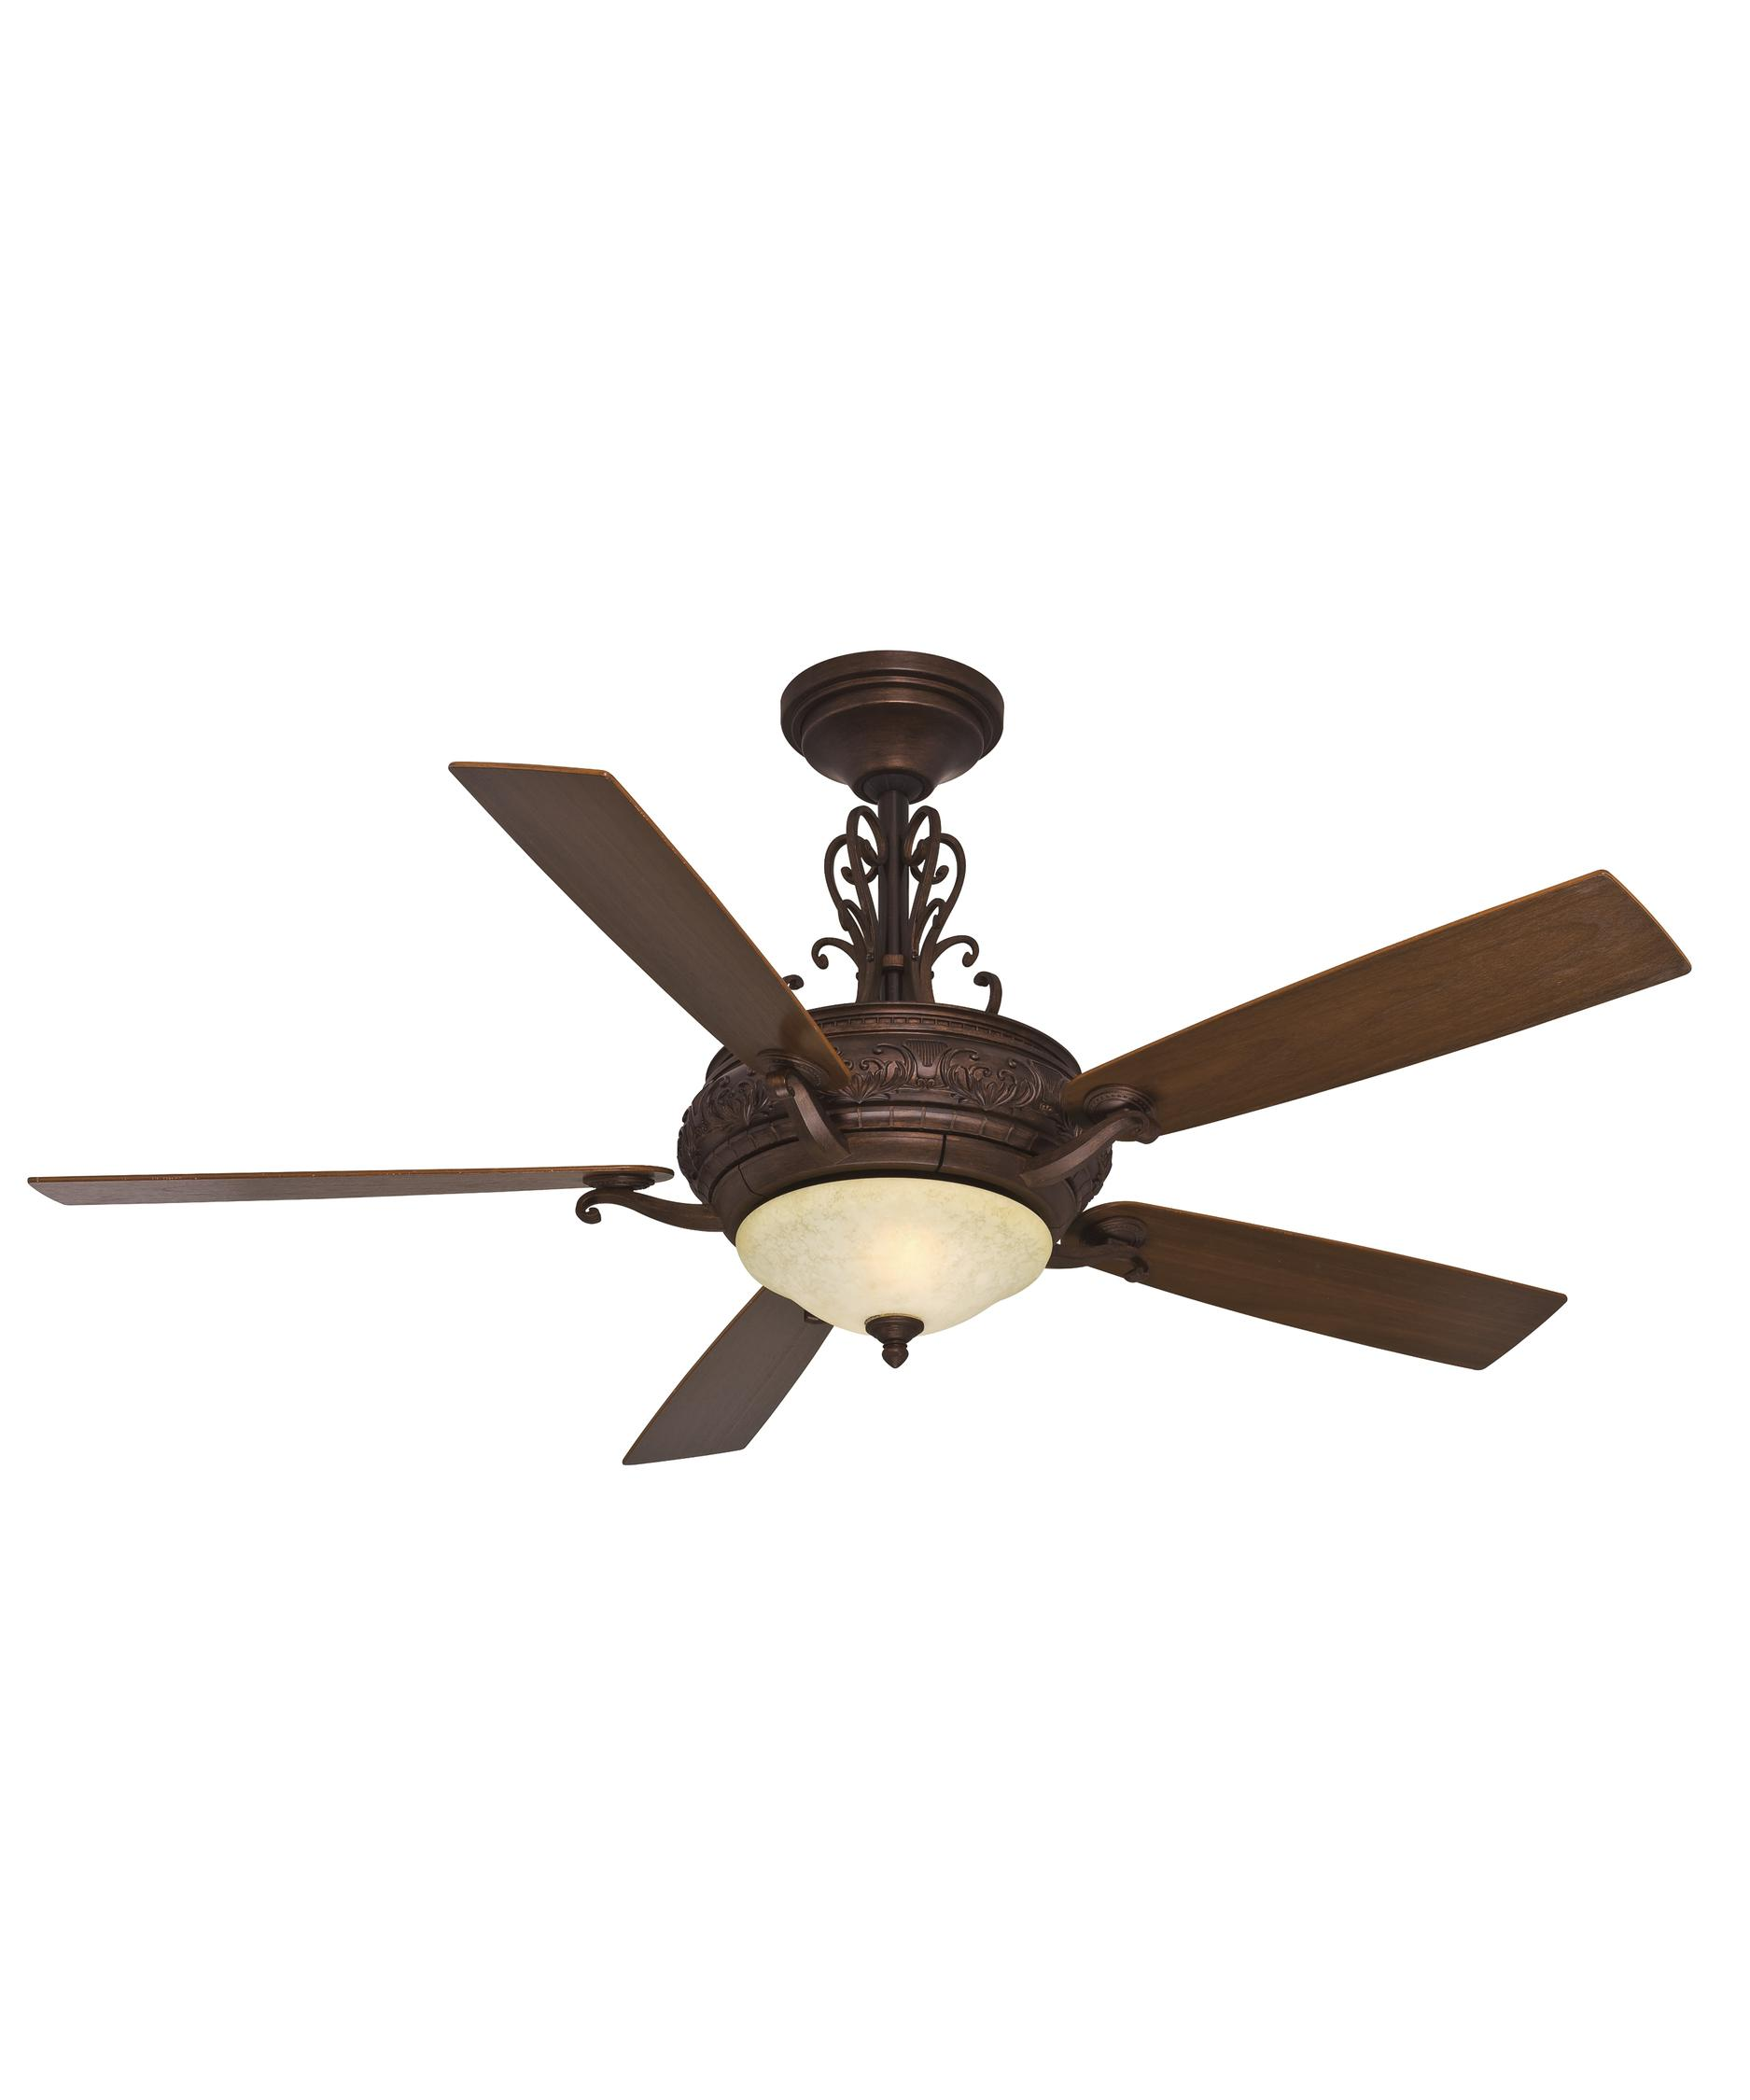 Murray Feiss Ceiling Fan Light Kit: Casablanca C32G611L Vicente 56 Inch Ceiling Fan With Light